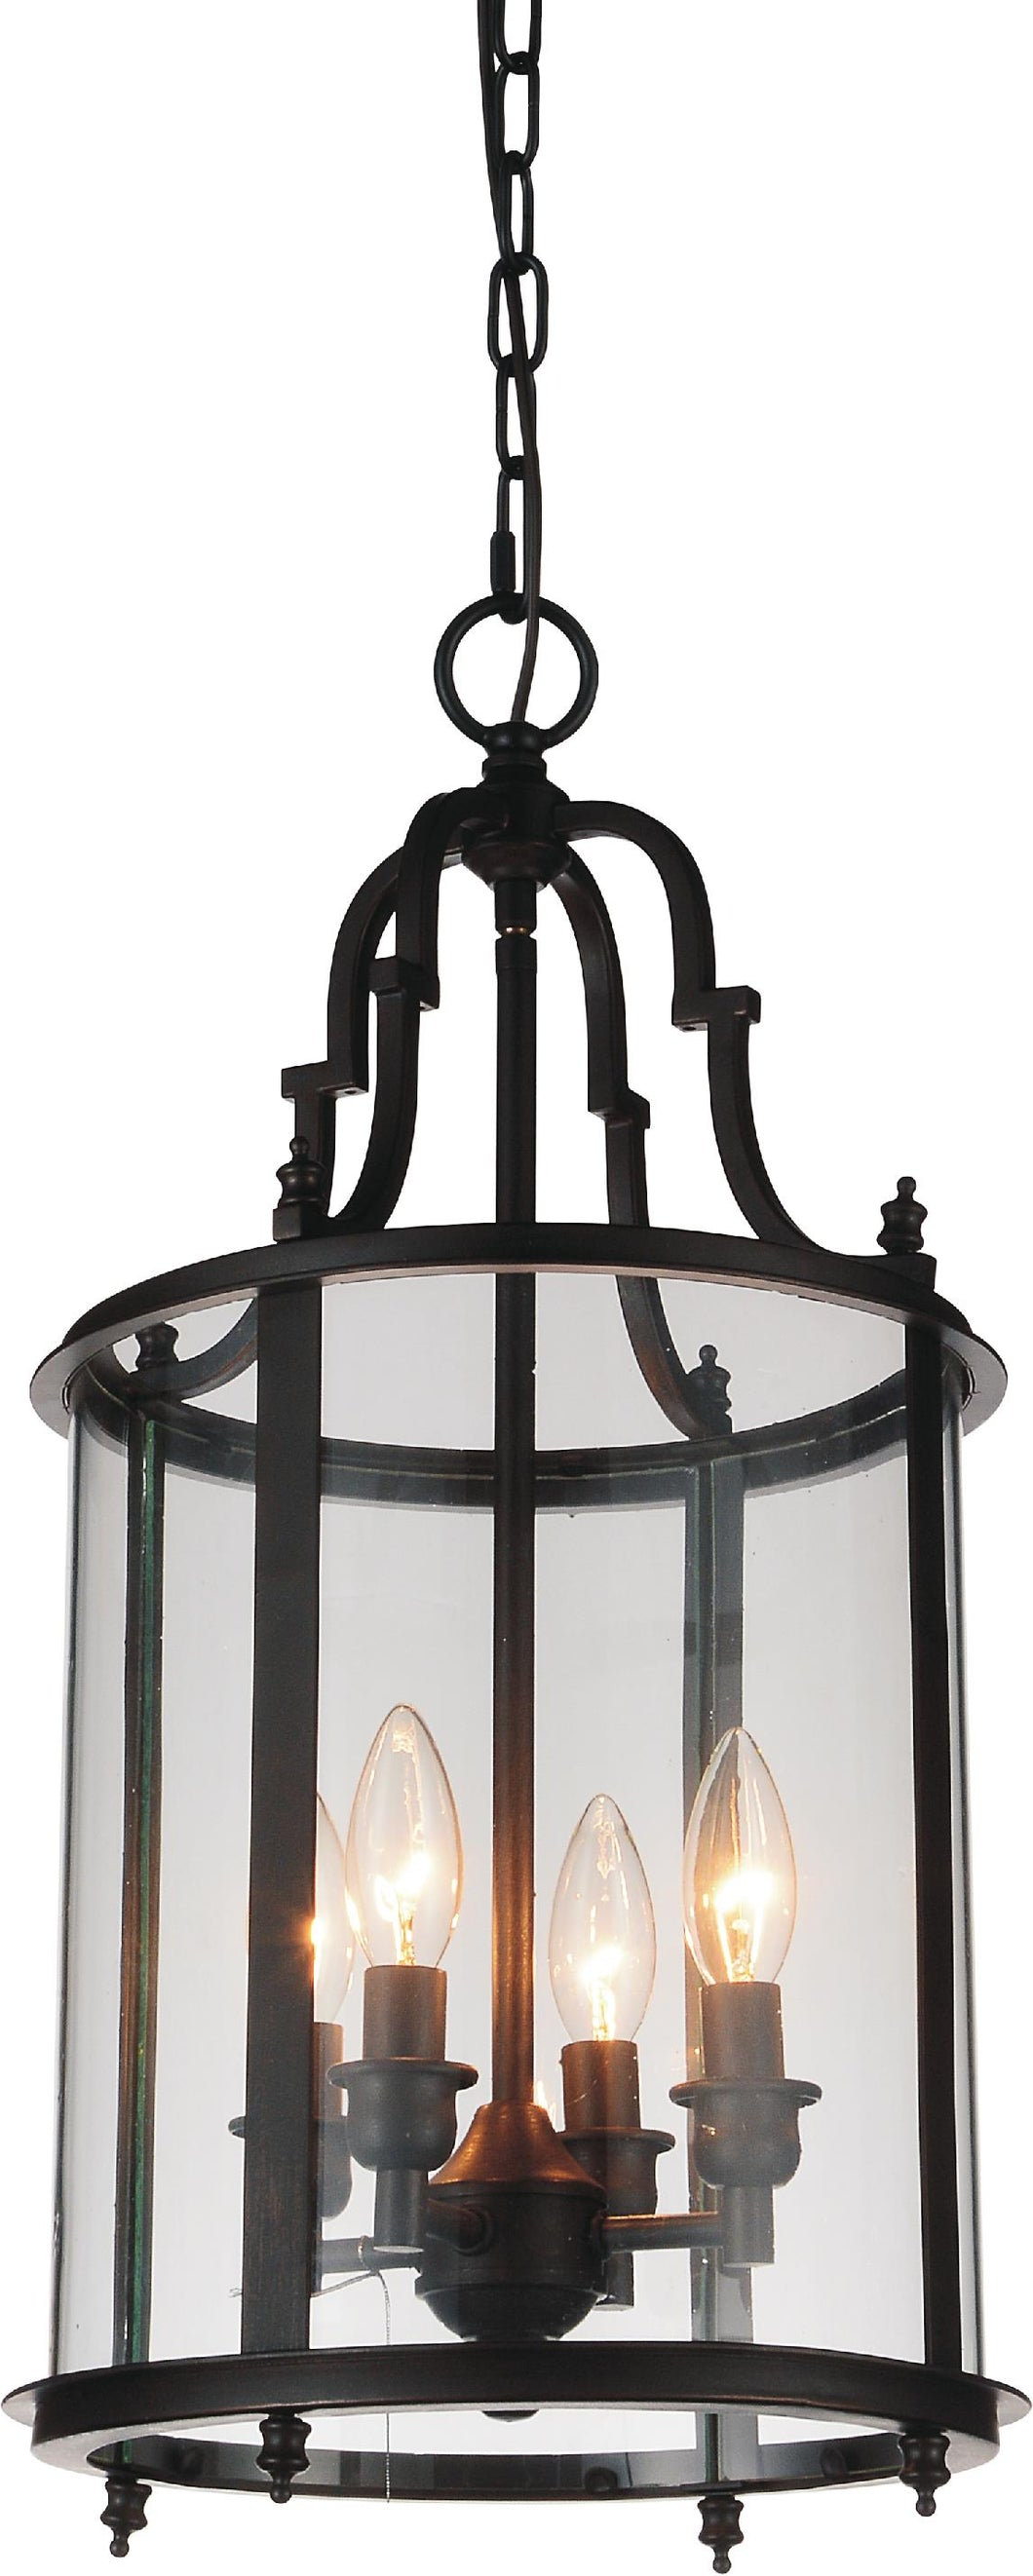 4 Light Drum Shade Mini Pendant with Oil Rubbed Bronze finish